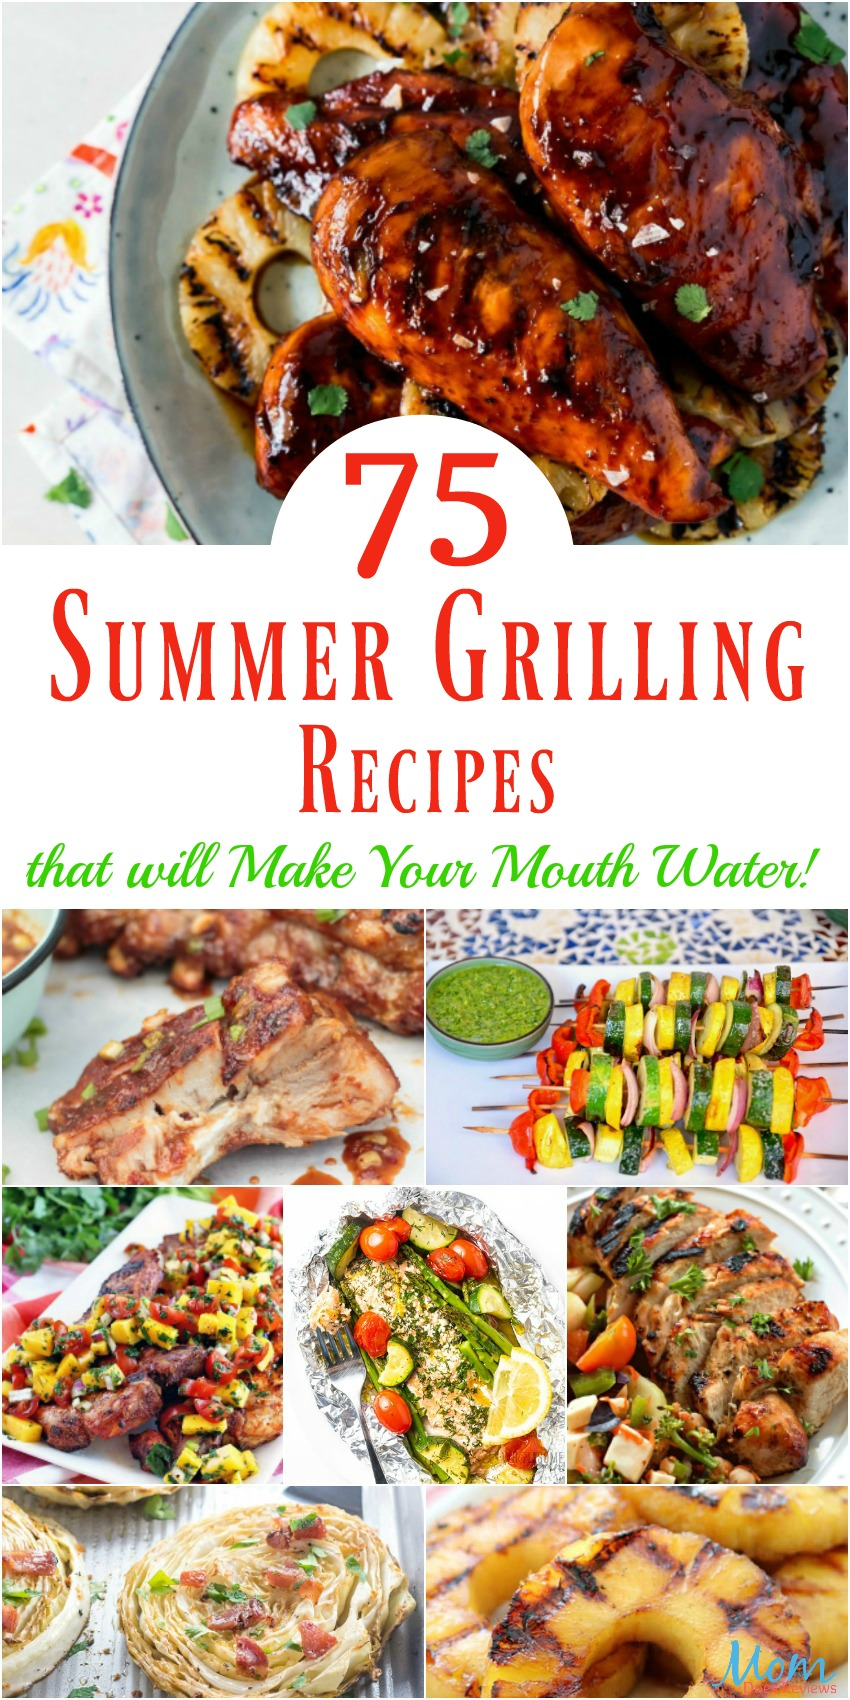 75 Summer Grilling Recipes that will Make Your Mouth Water! #recipes #summerfoods #grilling #yummy #getinmybelly